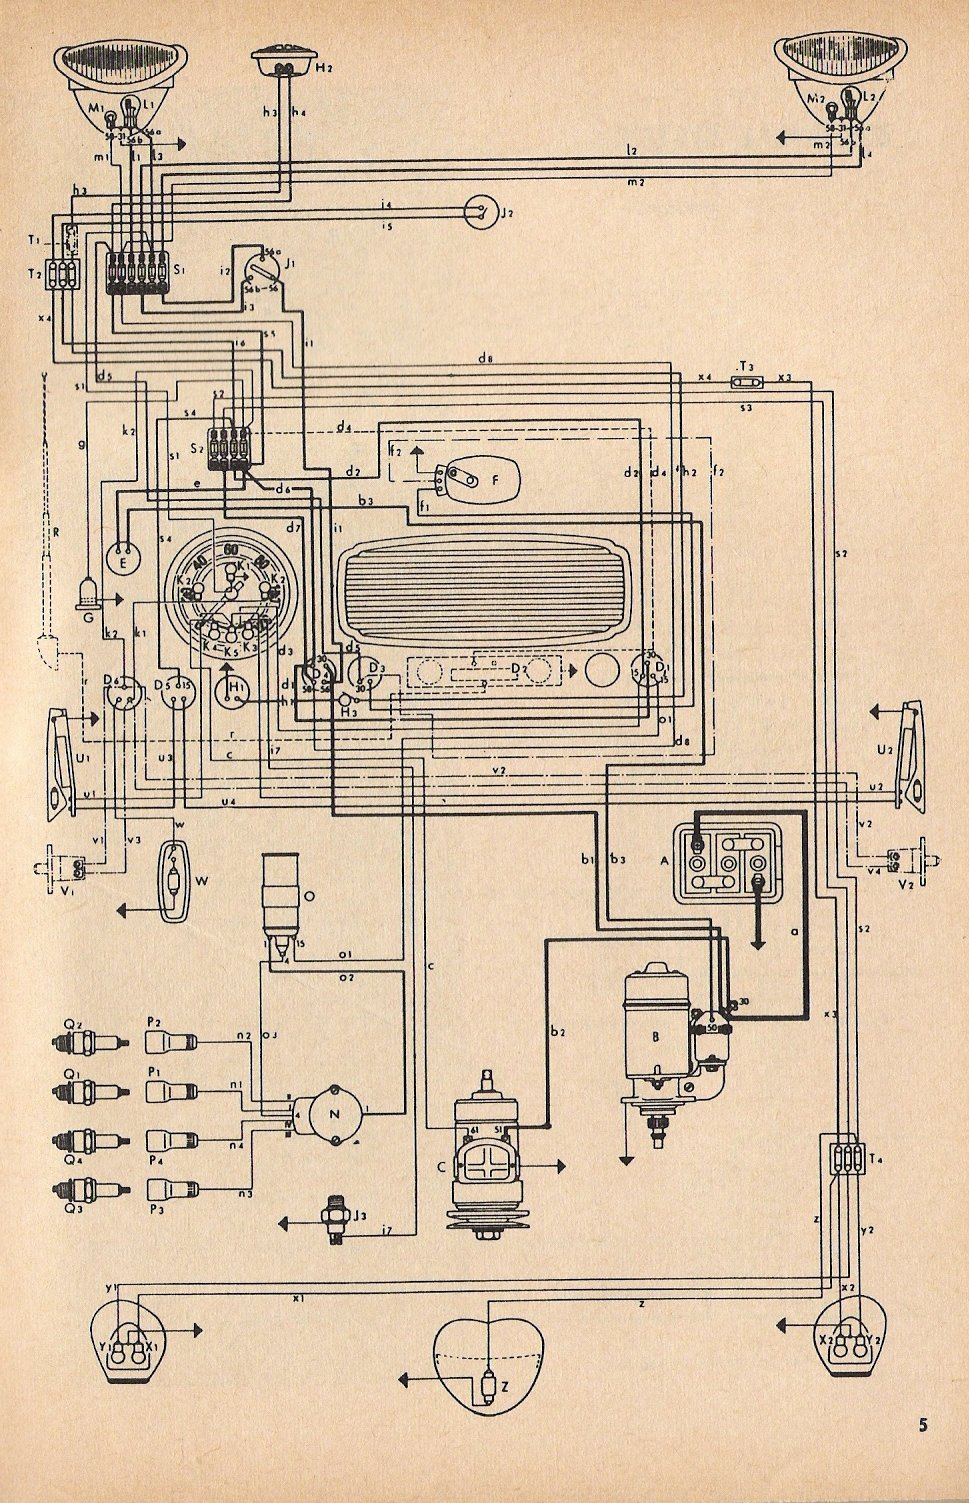 69 vw bug wiring harness wiring diagram detailed 1973 VW Wiring Diagram thesamba com type 1 wiring diagrams vw bug wiring harness kit 69 vw bug wiring harness